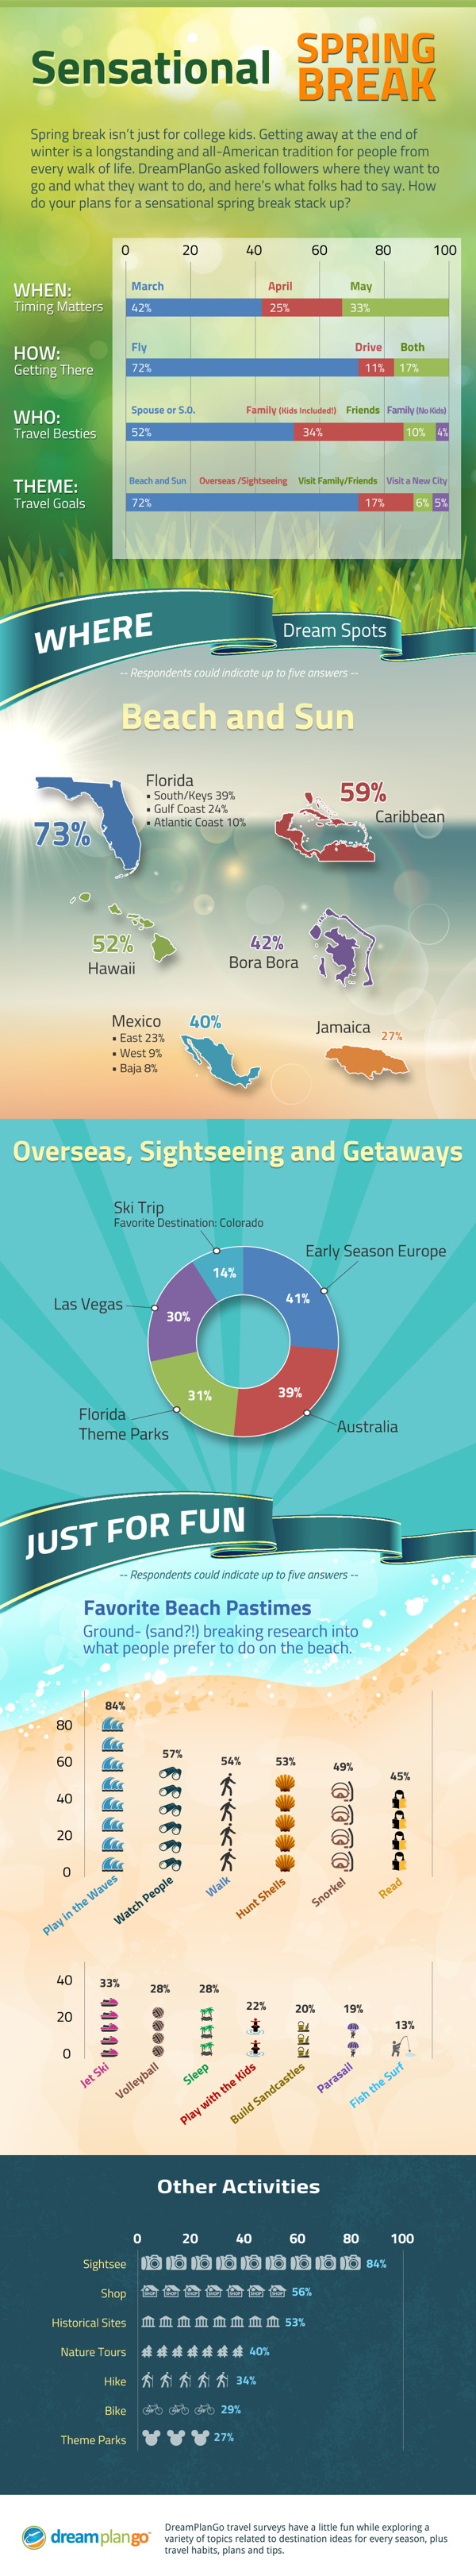 Infographic- Sensational Spring Break 2014: How Travelers' Plans Are Stacking Up